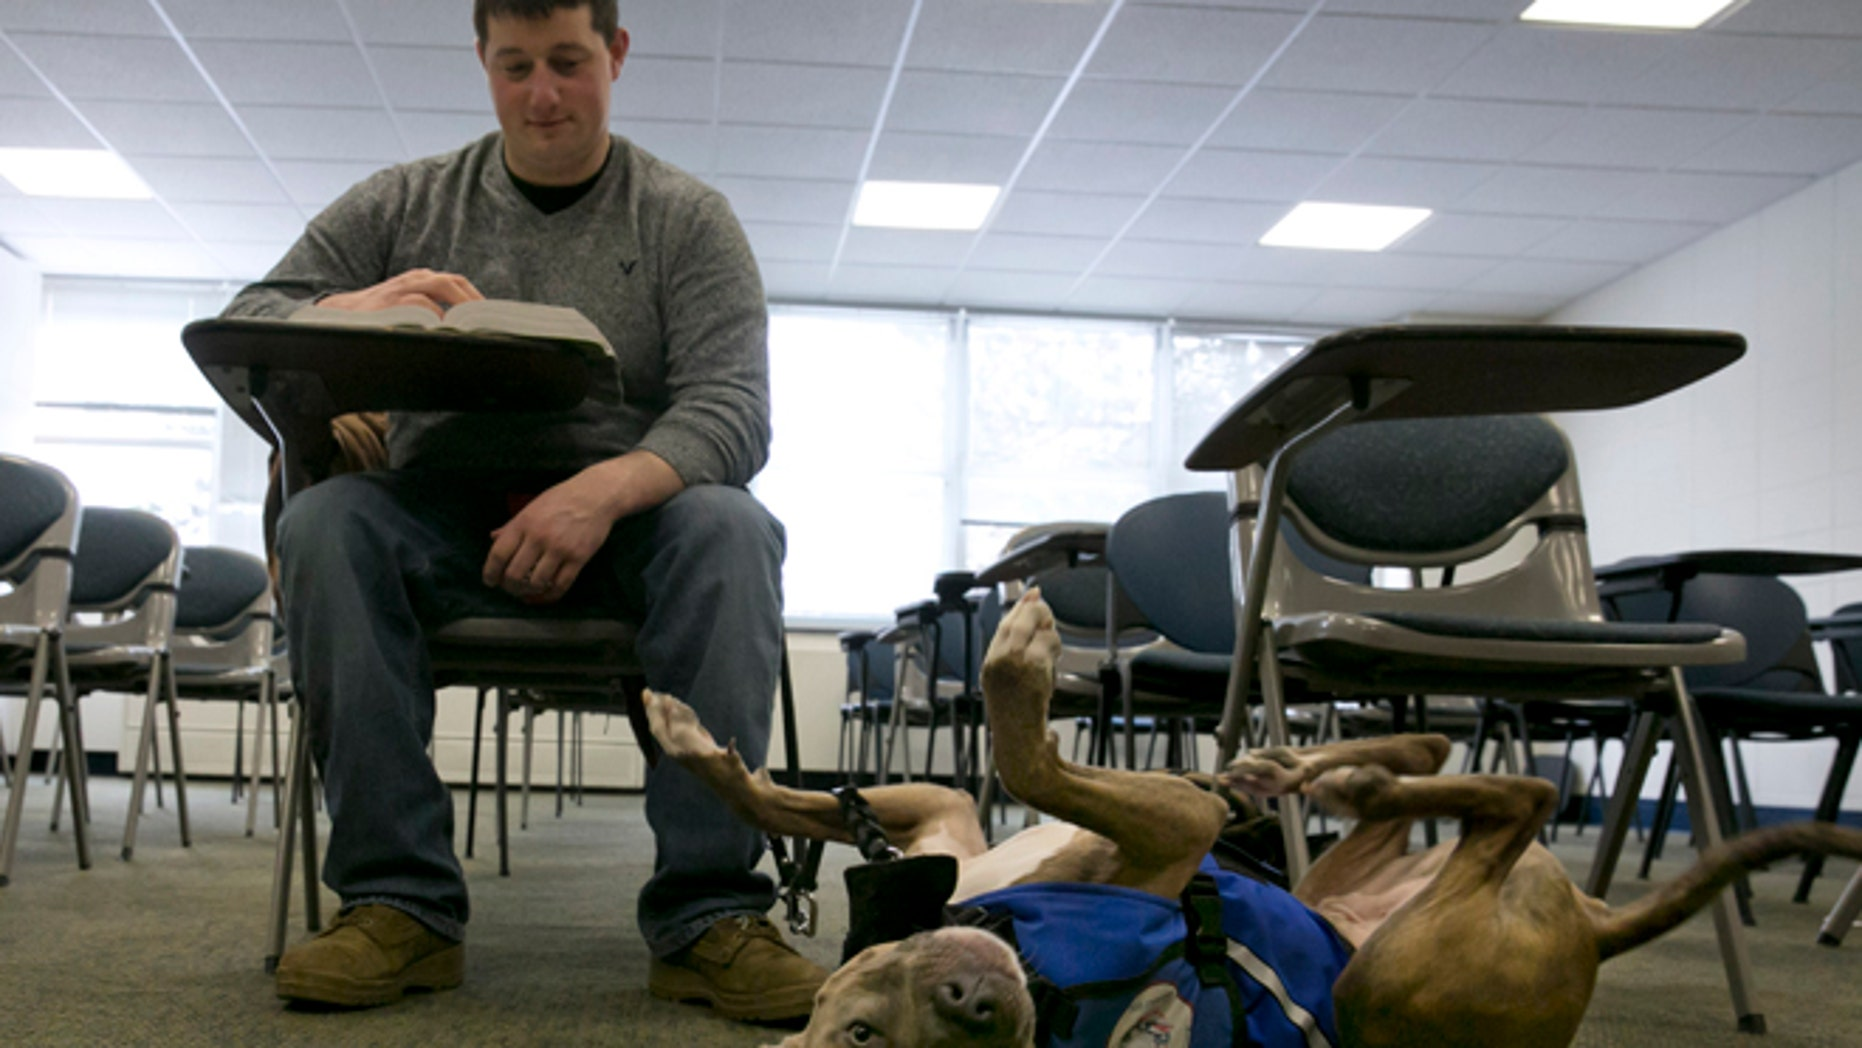 Feb. 4, 2015: Former U.S. Marine Joe Bonfiglio, 24, and his pit bull assistance dog Zen, sit in a classroom on the campus of Mercy College, in Dobbs Ferry, N.Y.